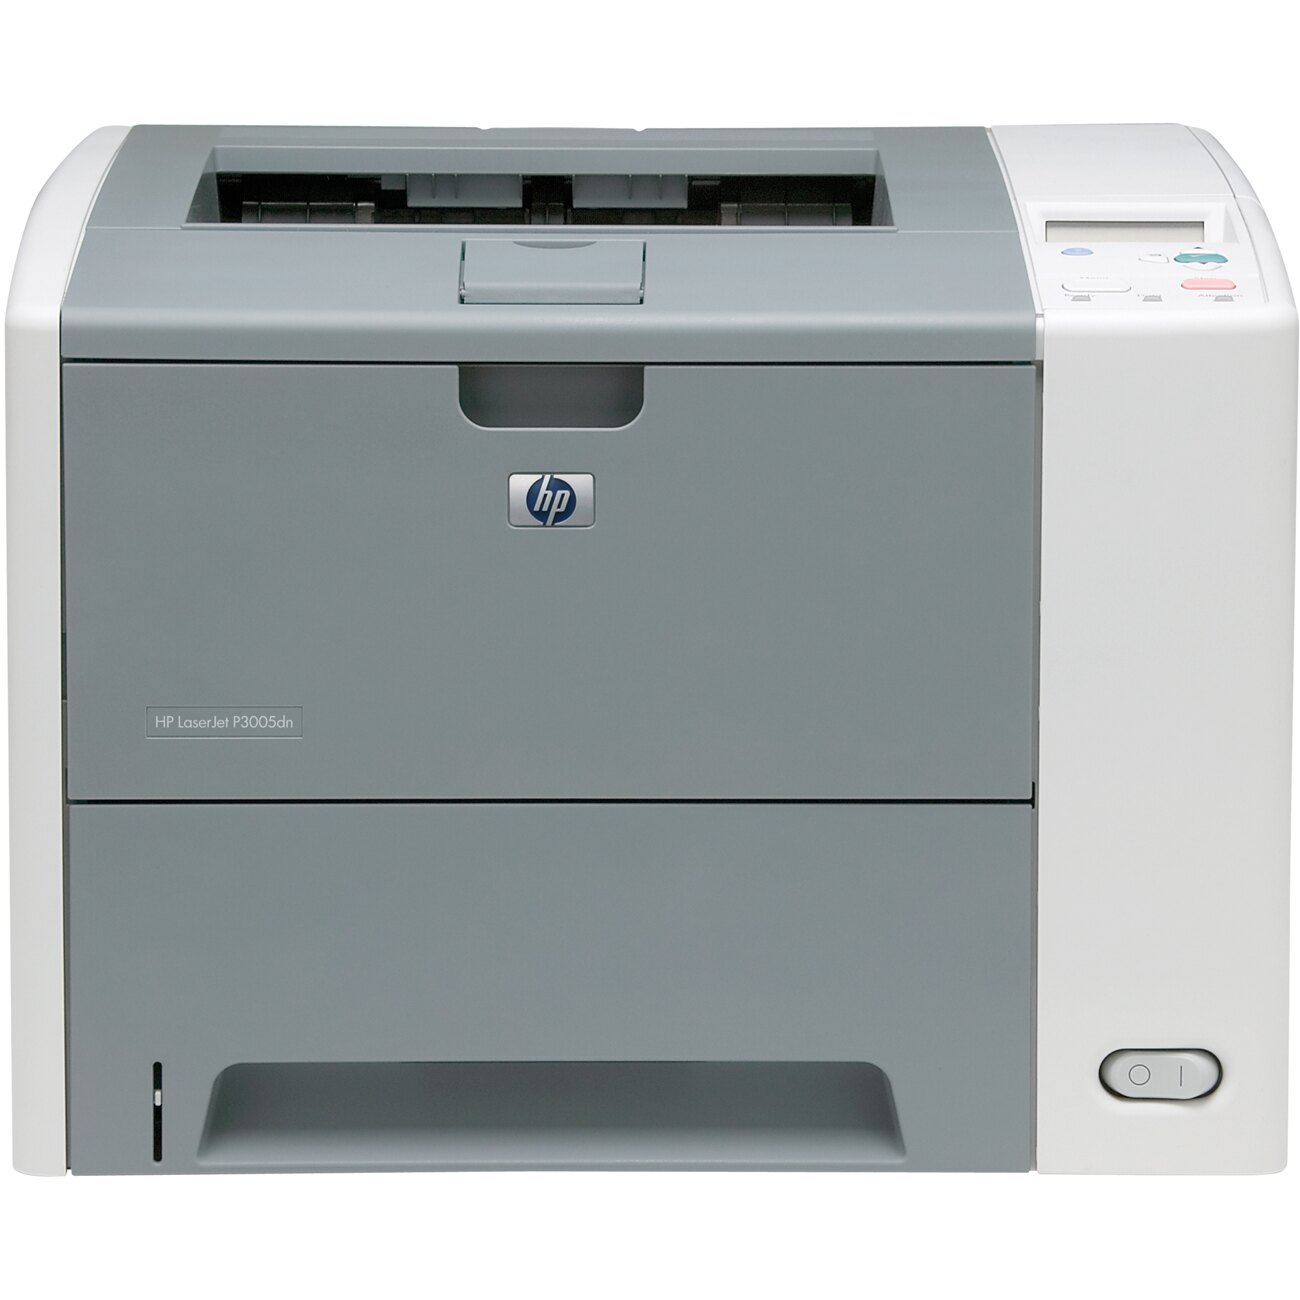 HP LaserJet P3000 P3005DN Laser Printer - Monochrome - 1200 x 1200 dpi Print - Plain Paper Print - Desktop - 35 ppm Mono Print - Letter, Legal, Executive, Custom Size - 600 sheets Standard Input Capacity - 100000 Duty Cycle - Automatic Duplex Print - Ethe 0